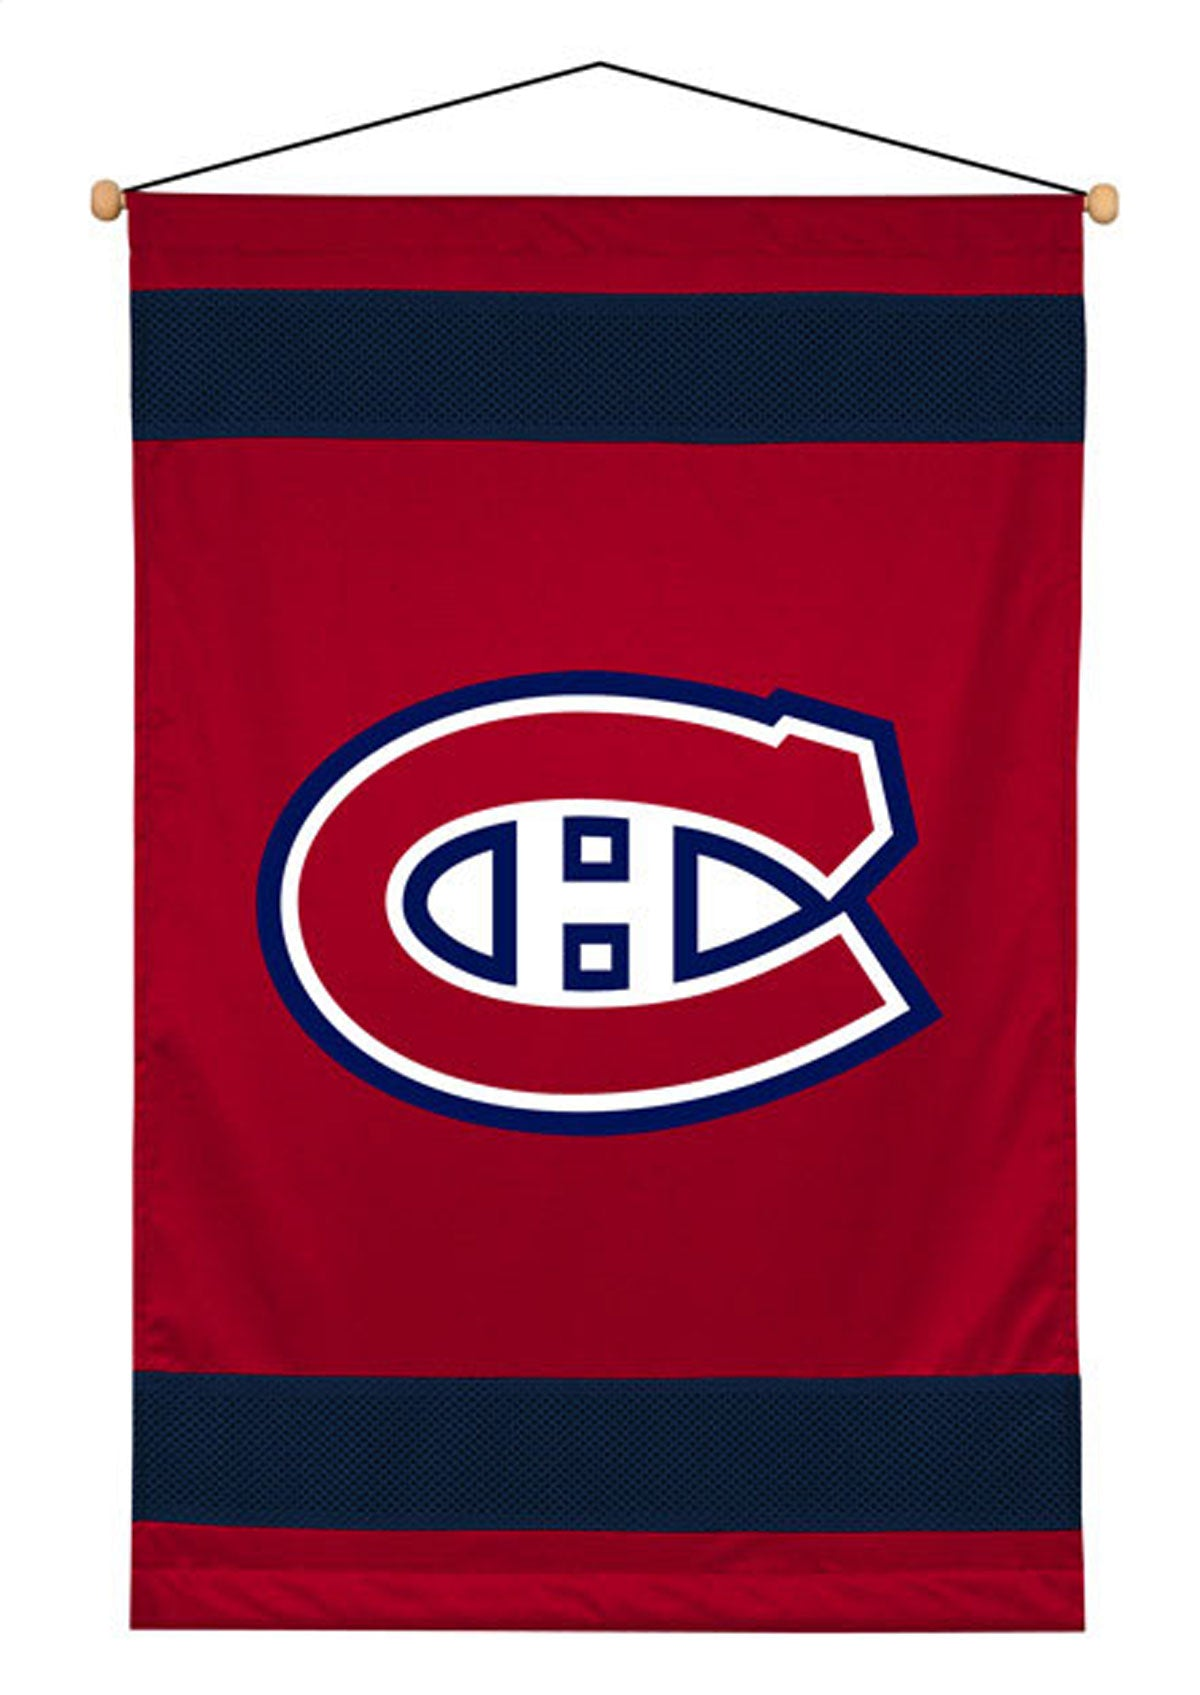 wall hangings - sports - obedding